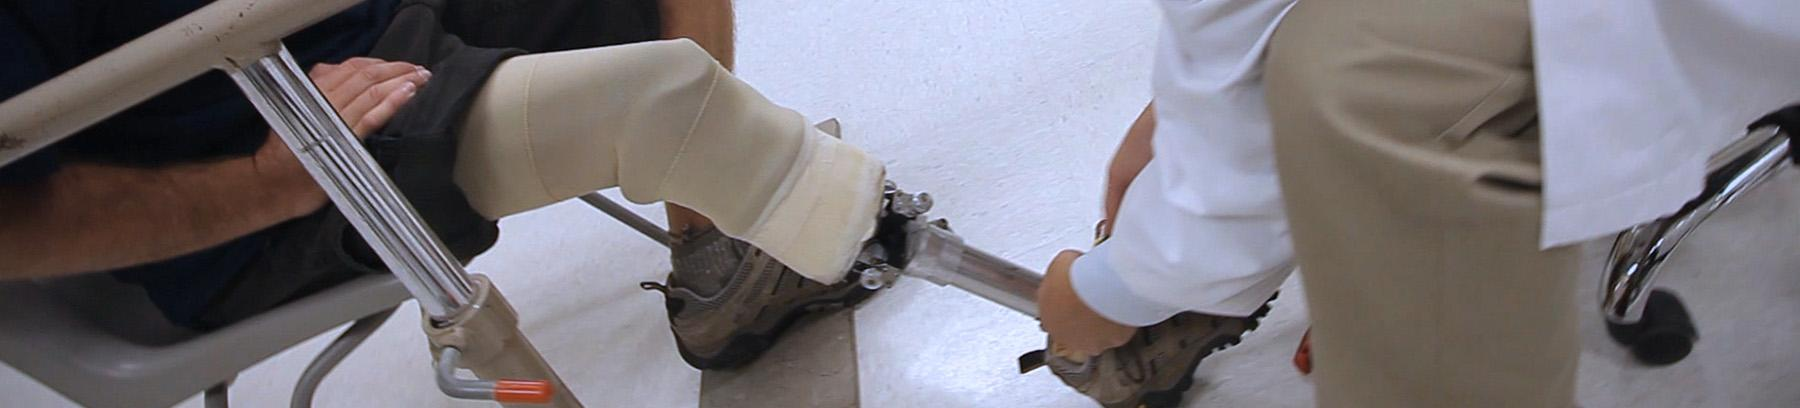 Person working on someone's prosthetic leg.